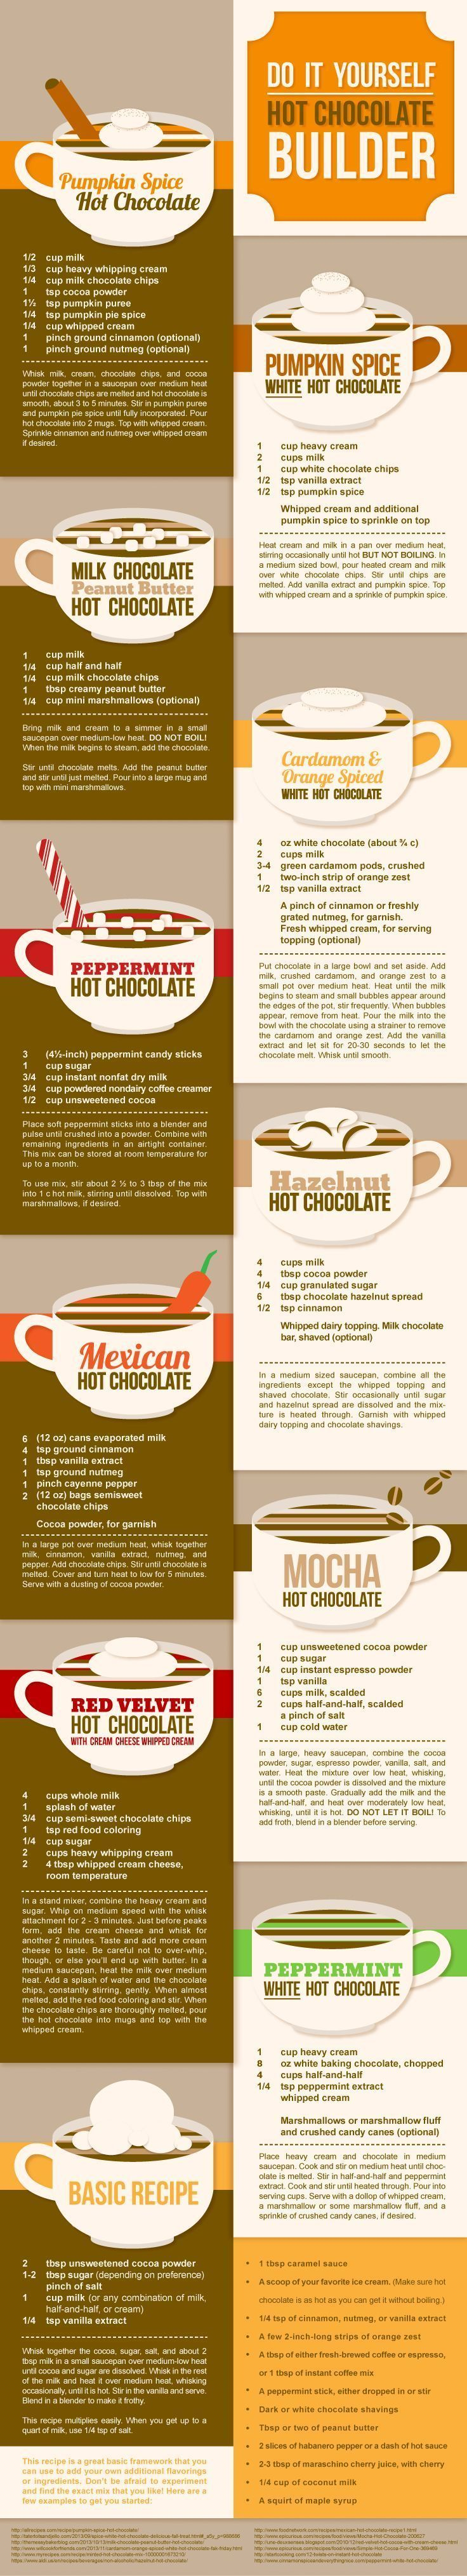 Best 25+ Hot chocolate recipes ideas on Pinterest | Winter food ...